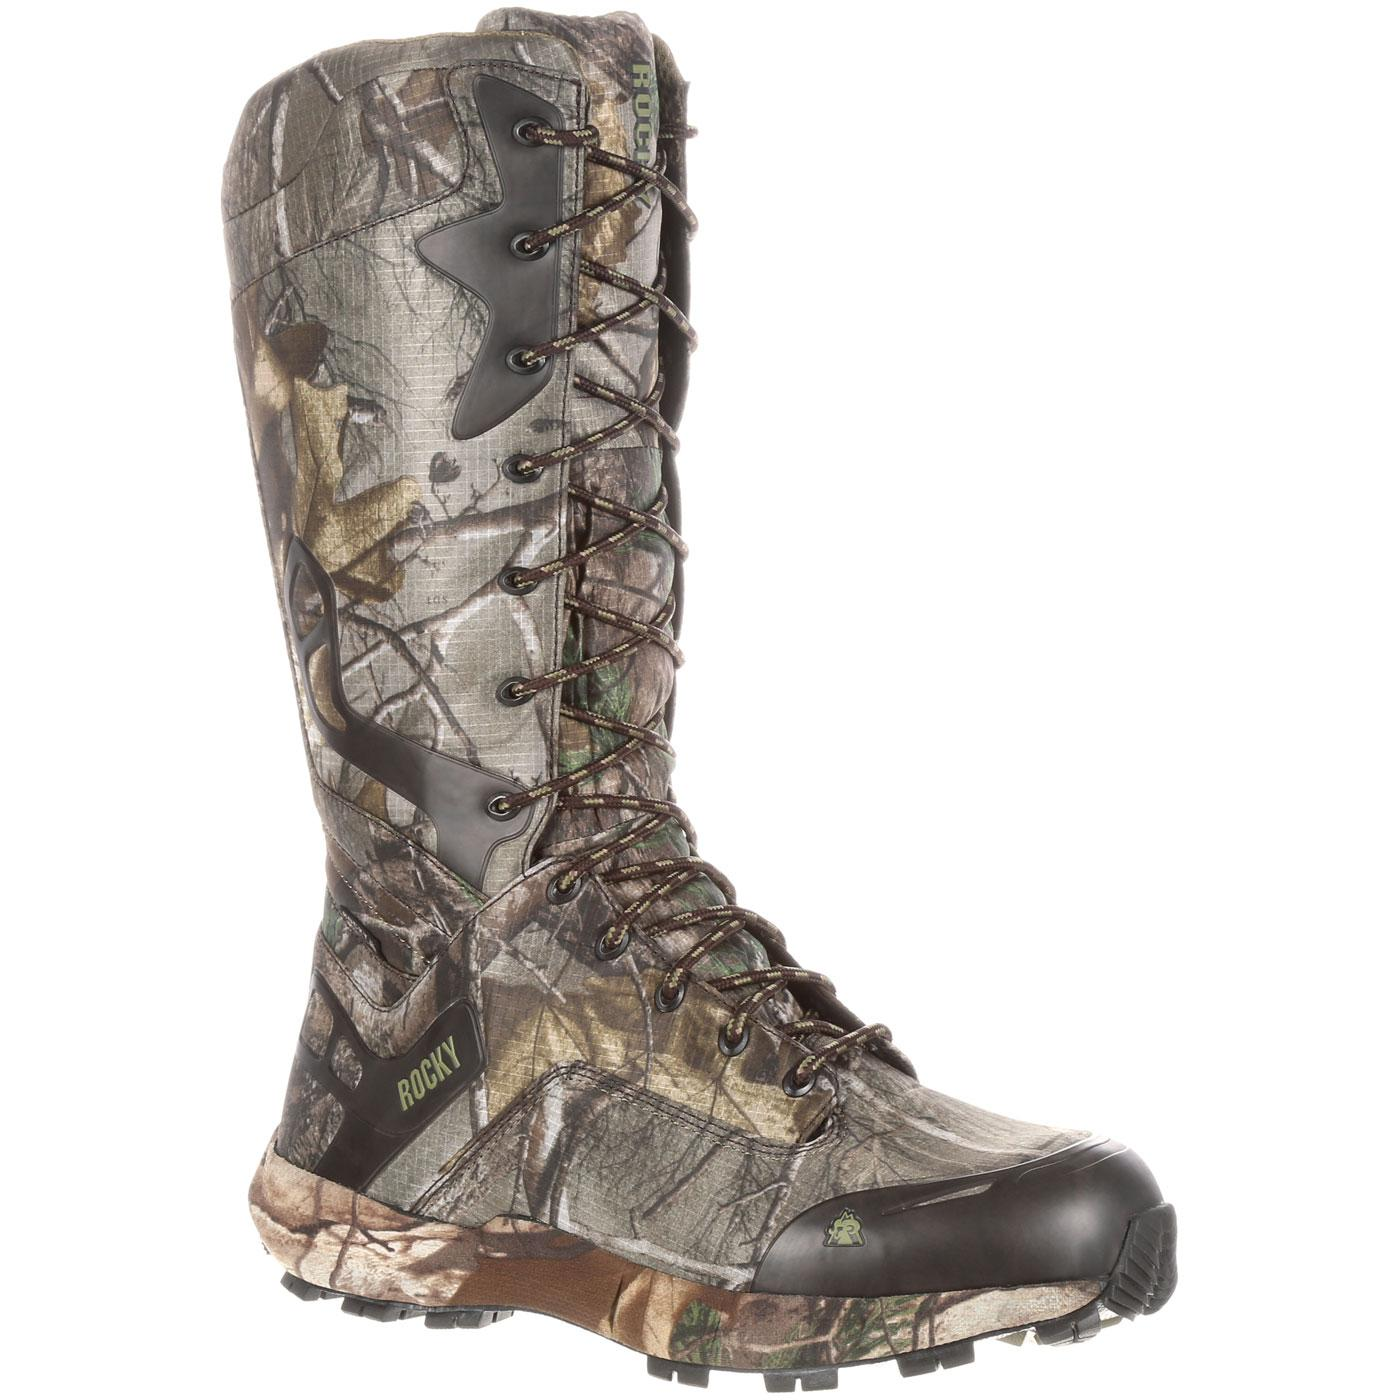 9d30006fe70 Rocky Broadhead Waterproof 1000G Insulated Trail Boot